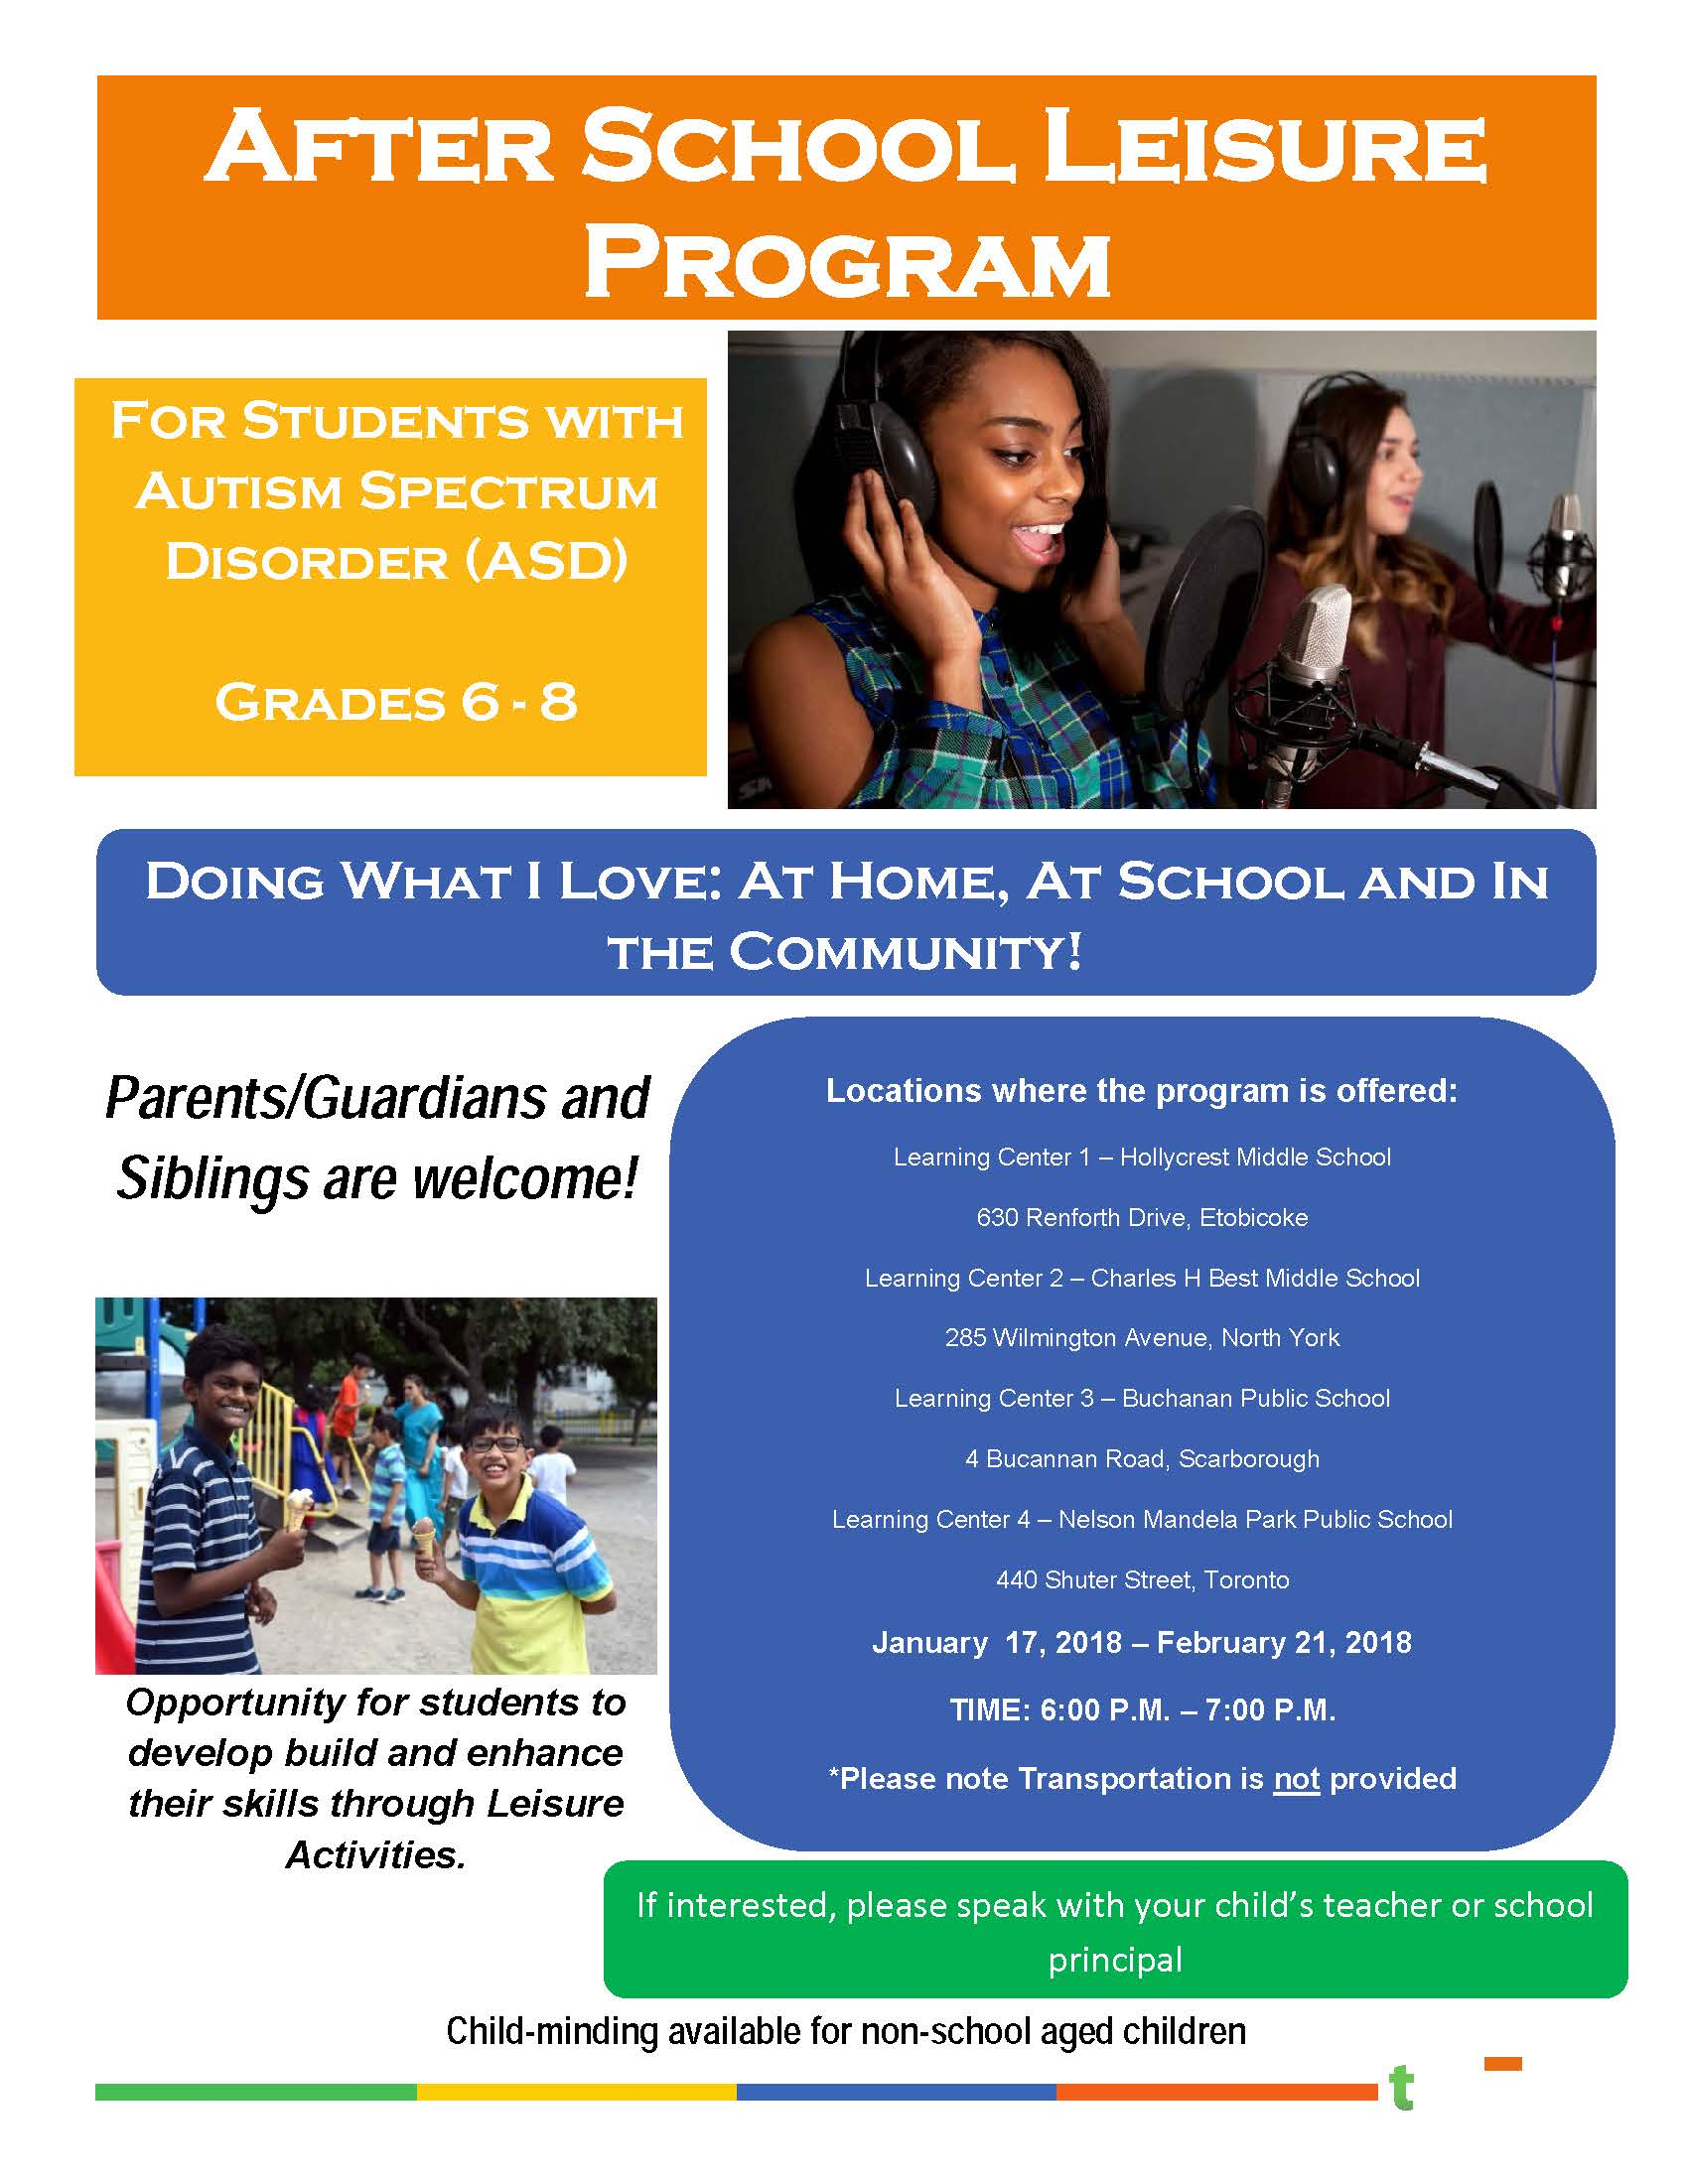 After School Leisure Program for ASD students